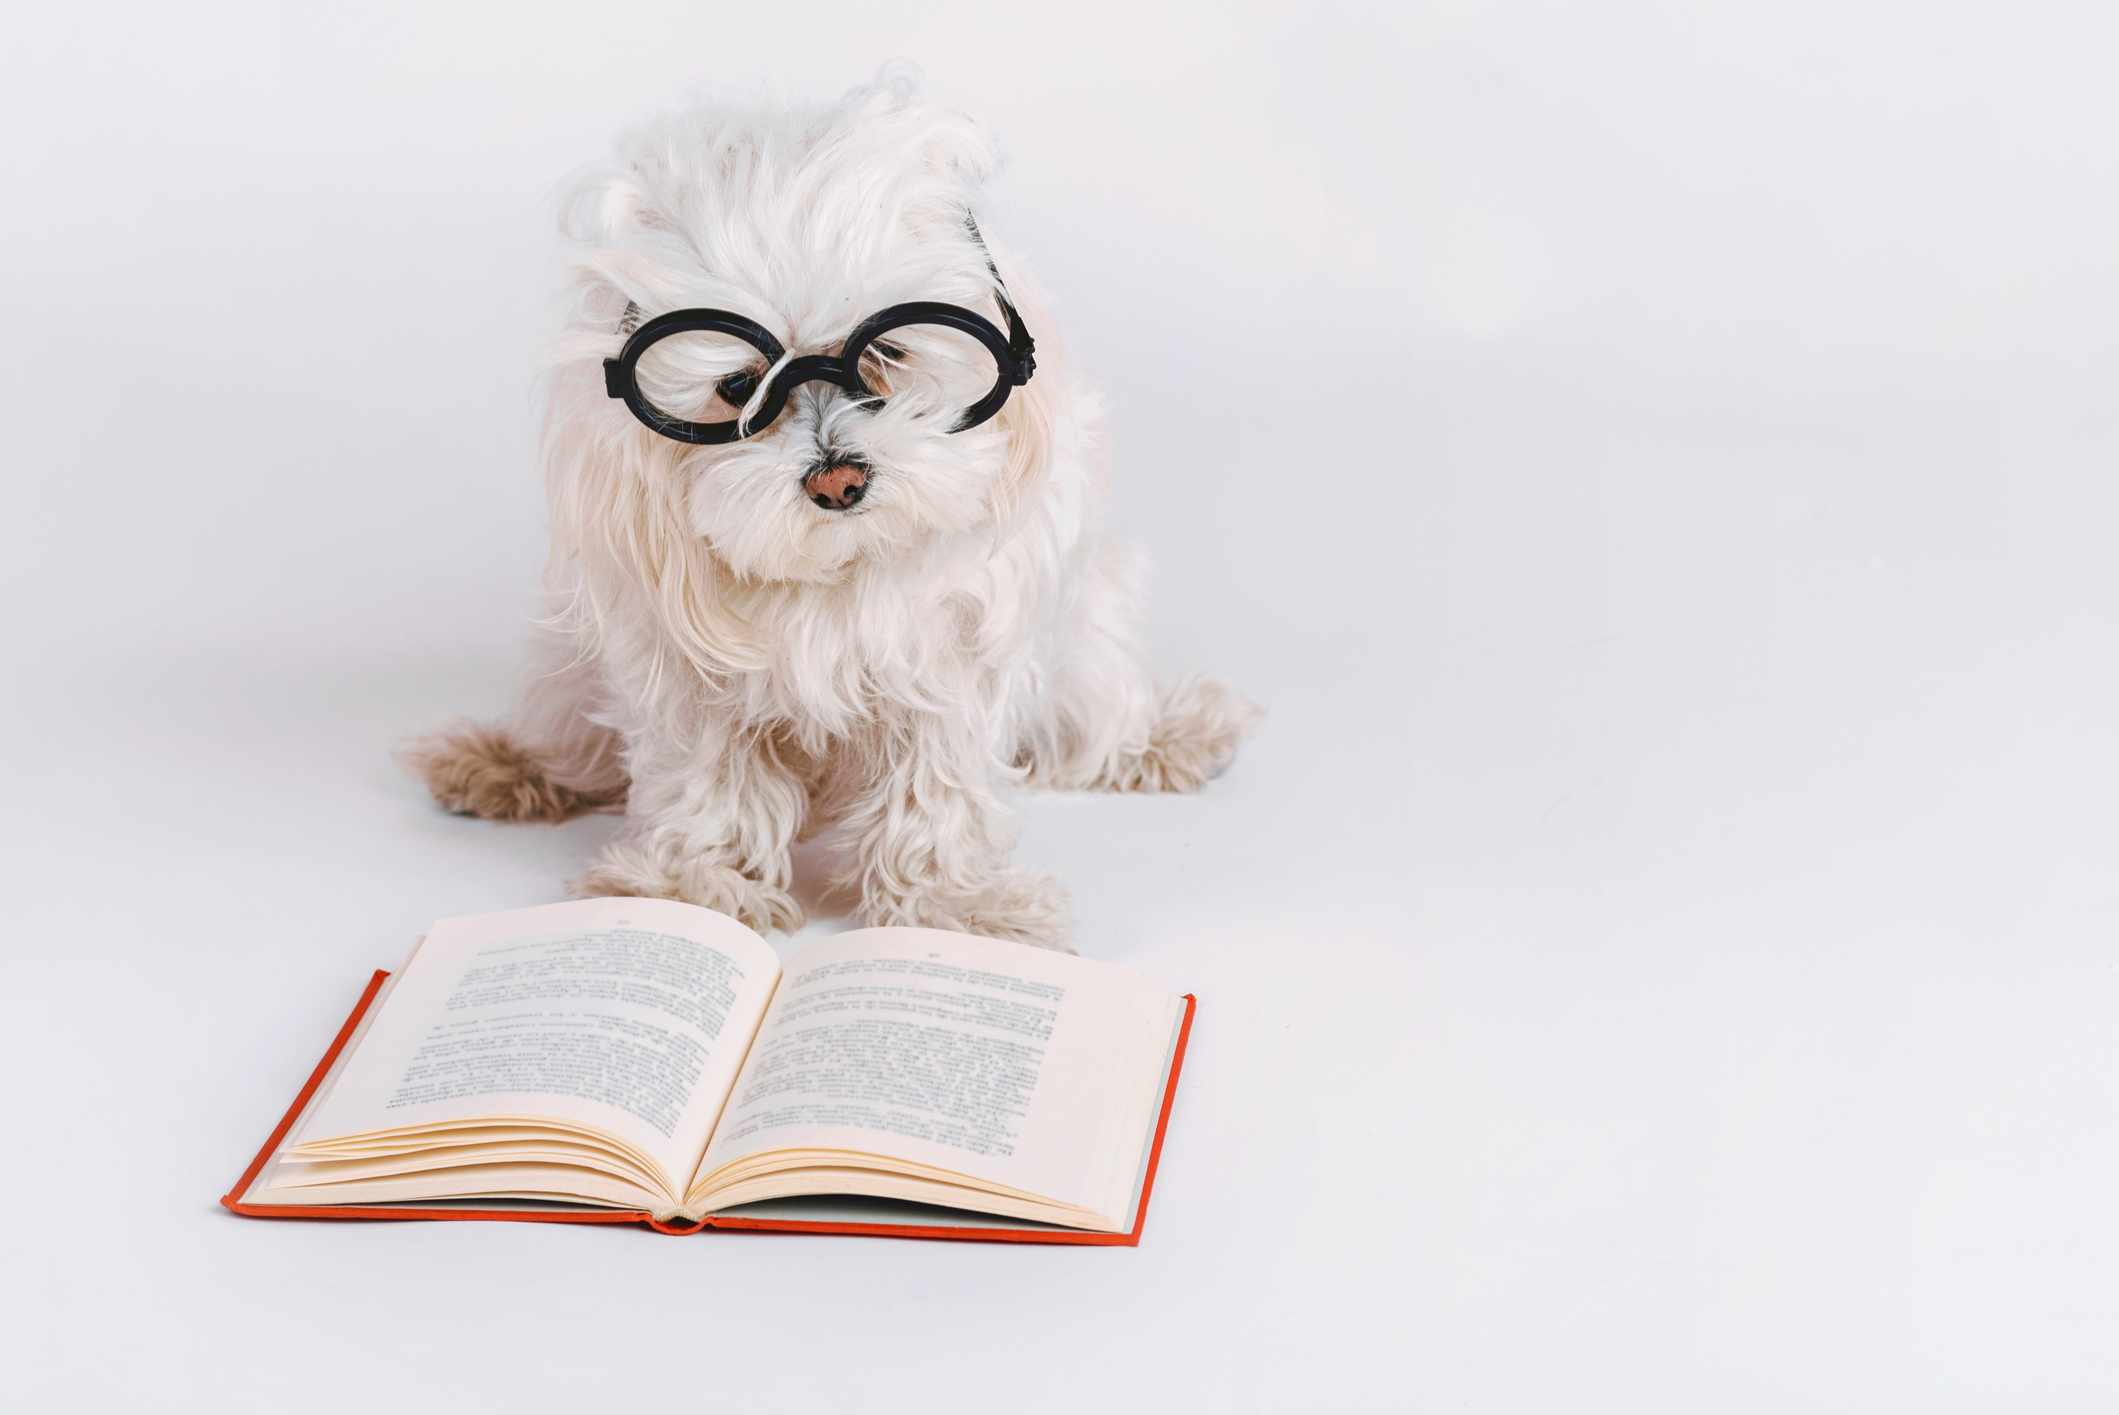 Top 10: What are the most intelligent dog breeds? © Getty Images